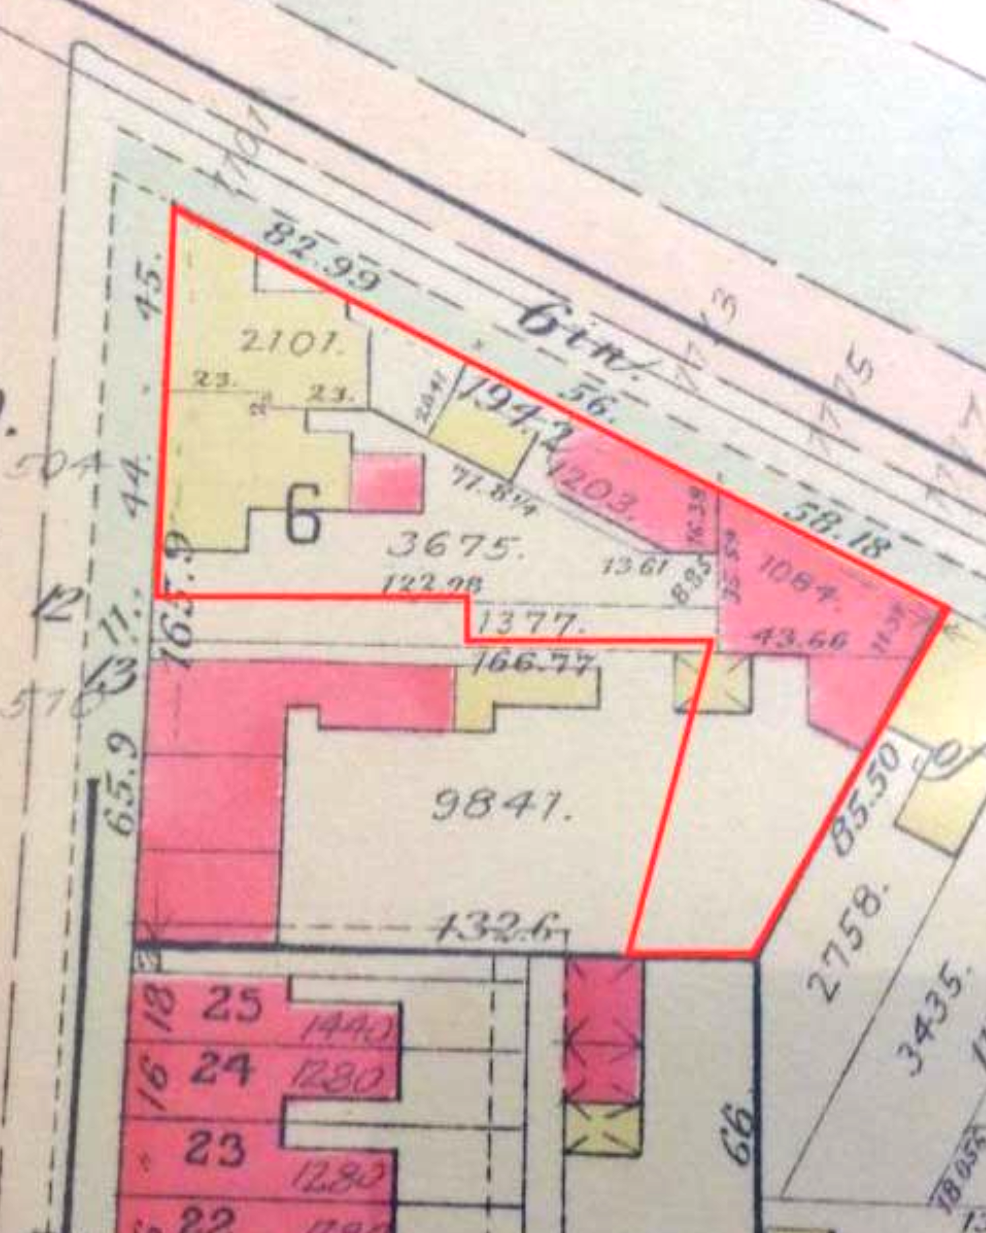 2.) 1903 Baist Map showing continued development of Square 994; the current footprint of Frager's Hardware property is highlighted in red. ( Baist Map, Volume 2, Plate 30,1903)